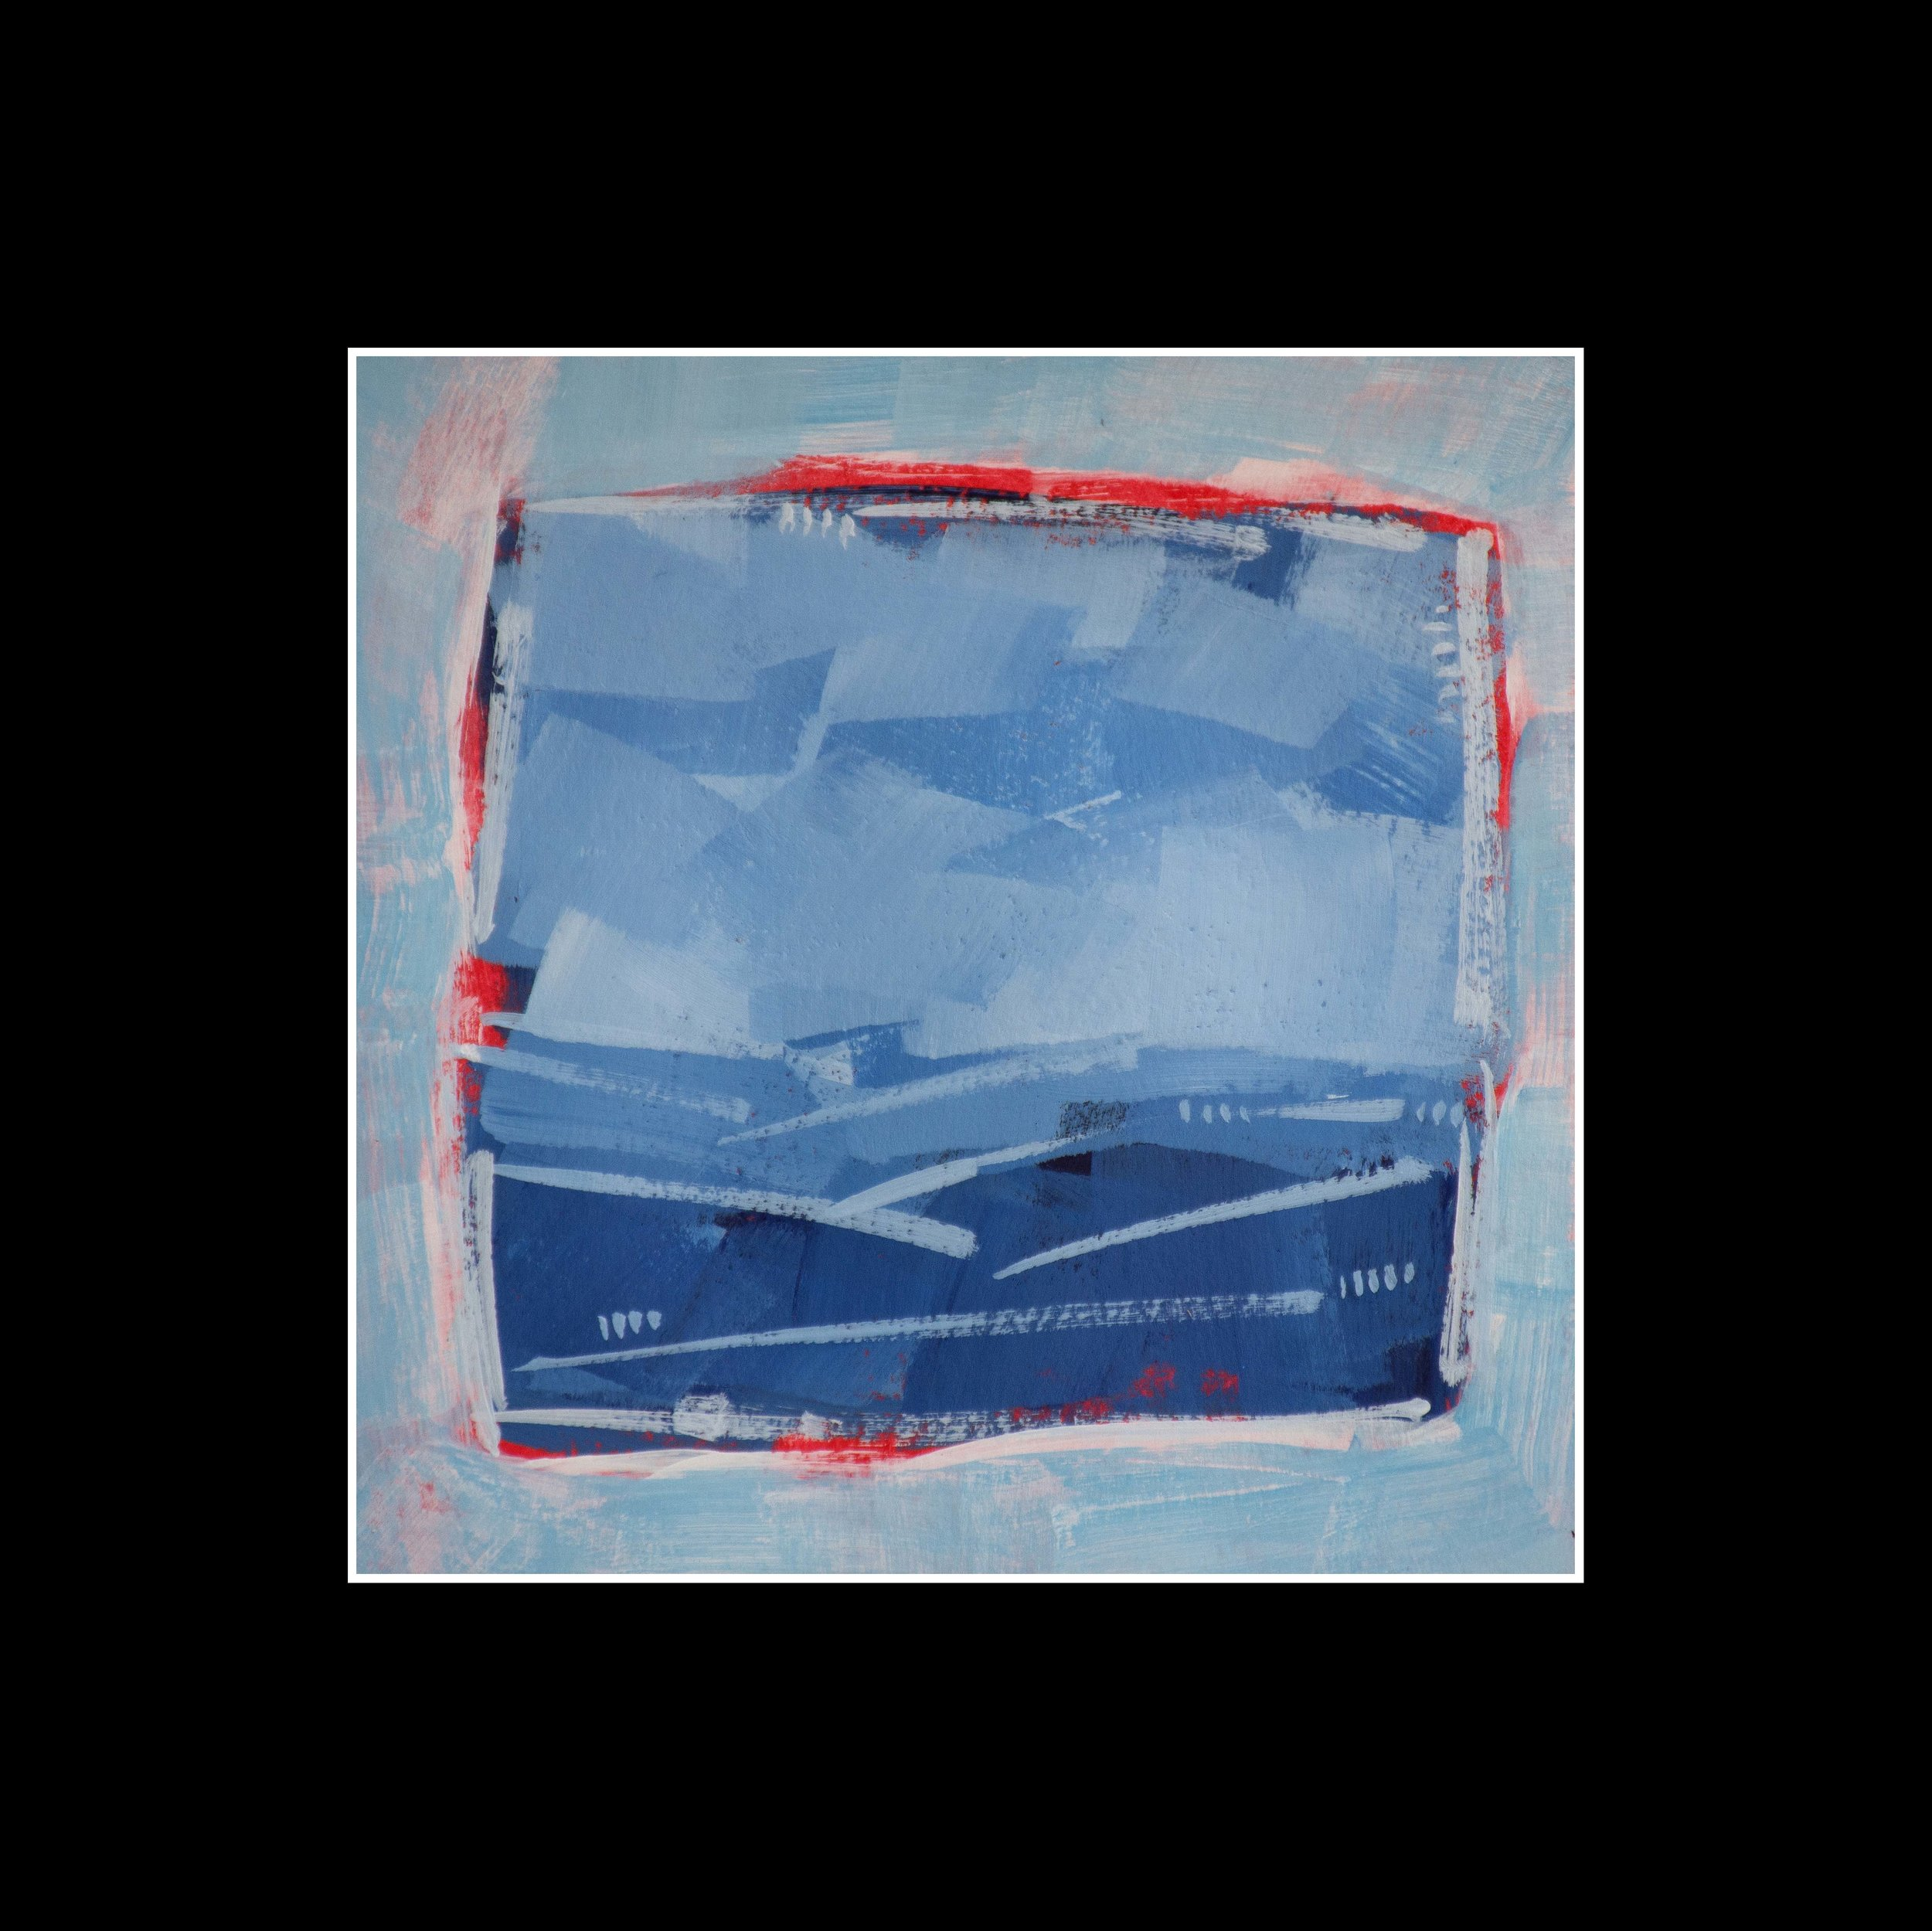 RWS001_Landscape in blue #1_SF_BlackMatte.jpg